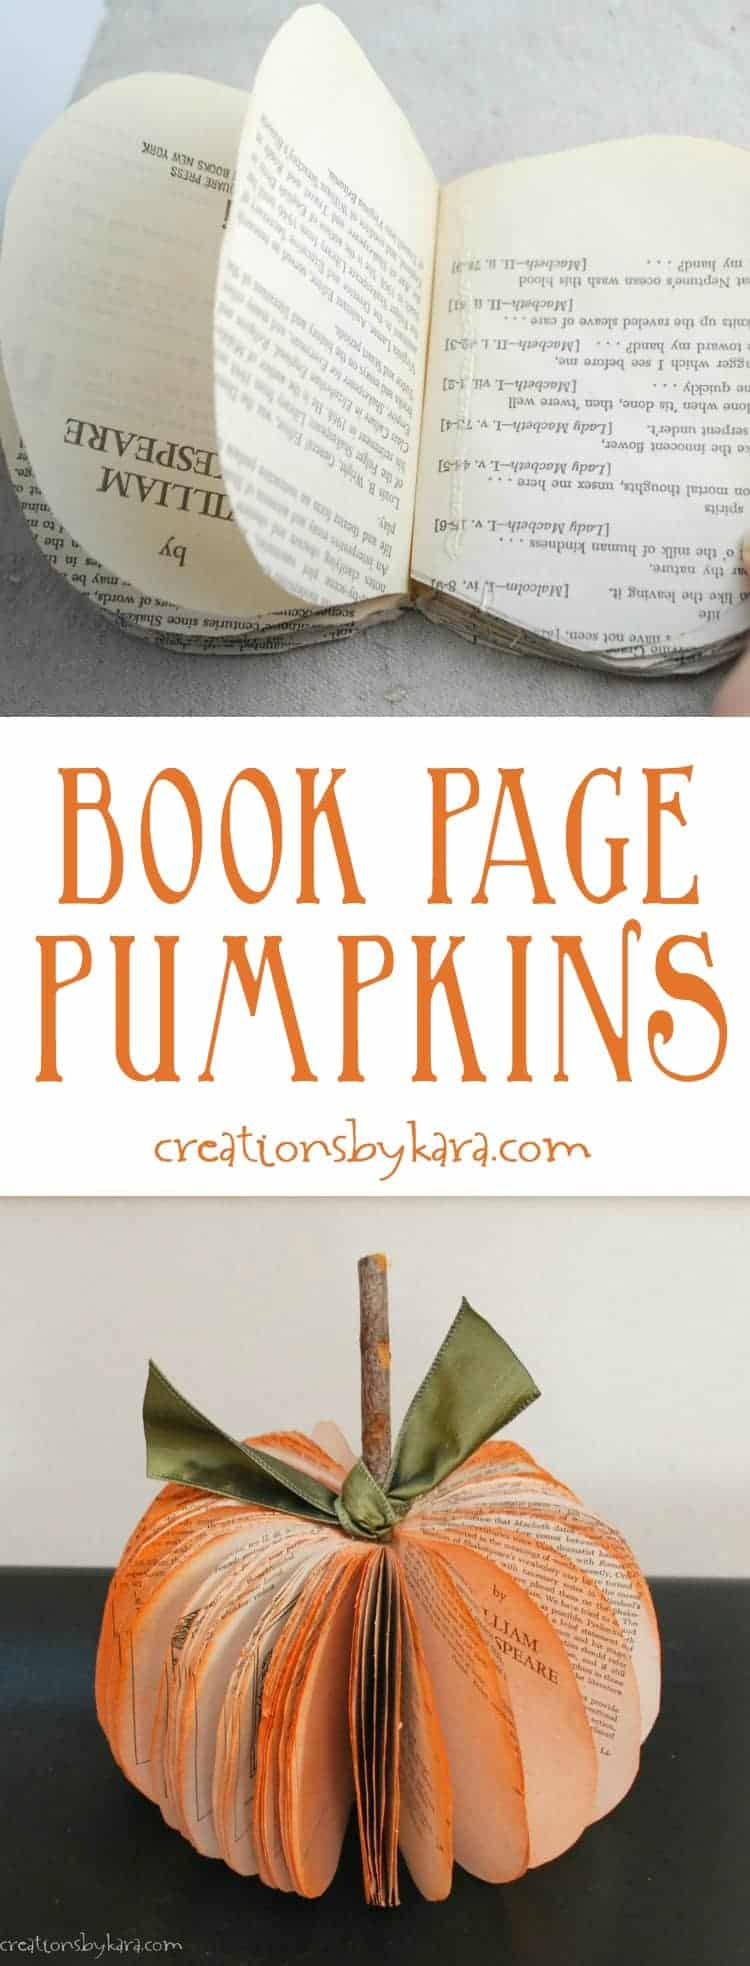 Book page pumpkin 15 Awesome Halloween Home Decor for Inside and Out